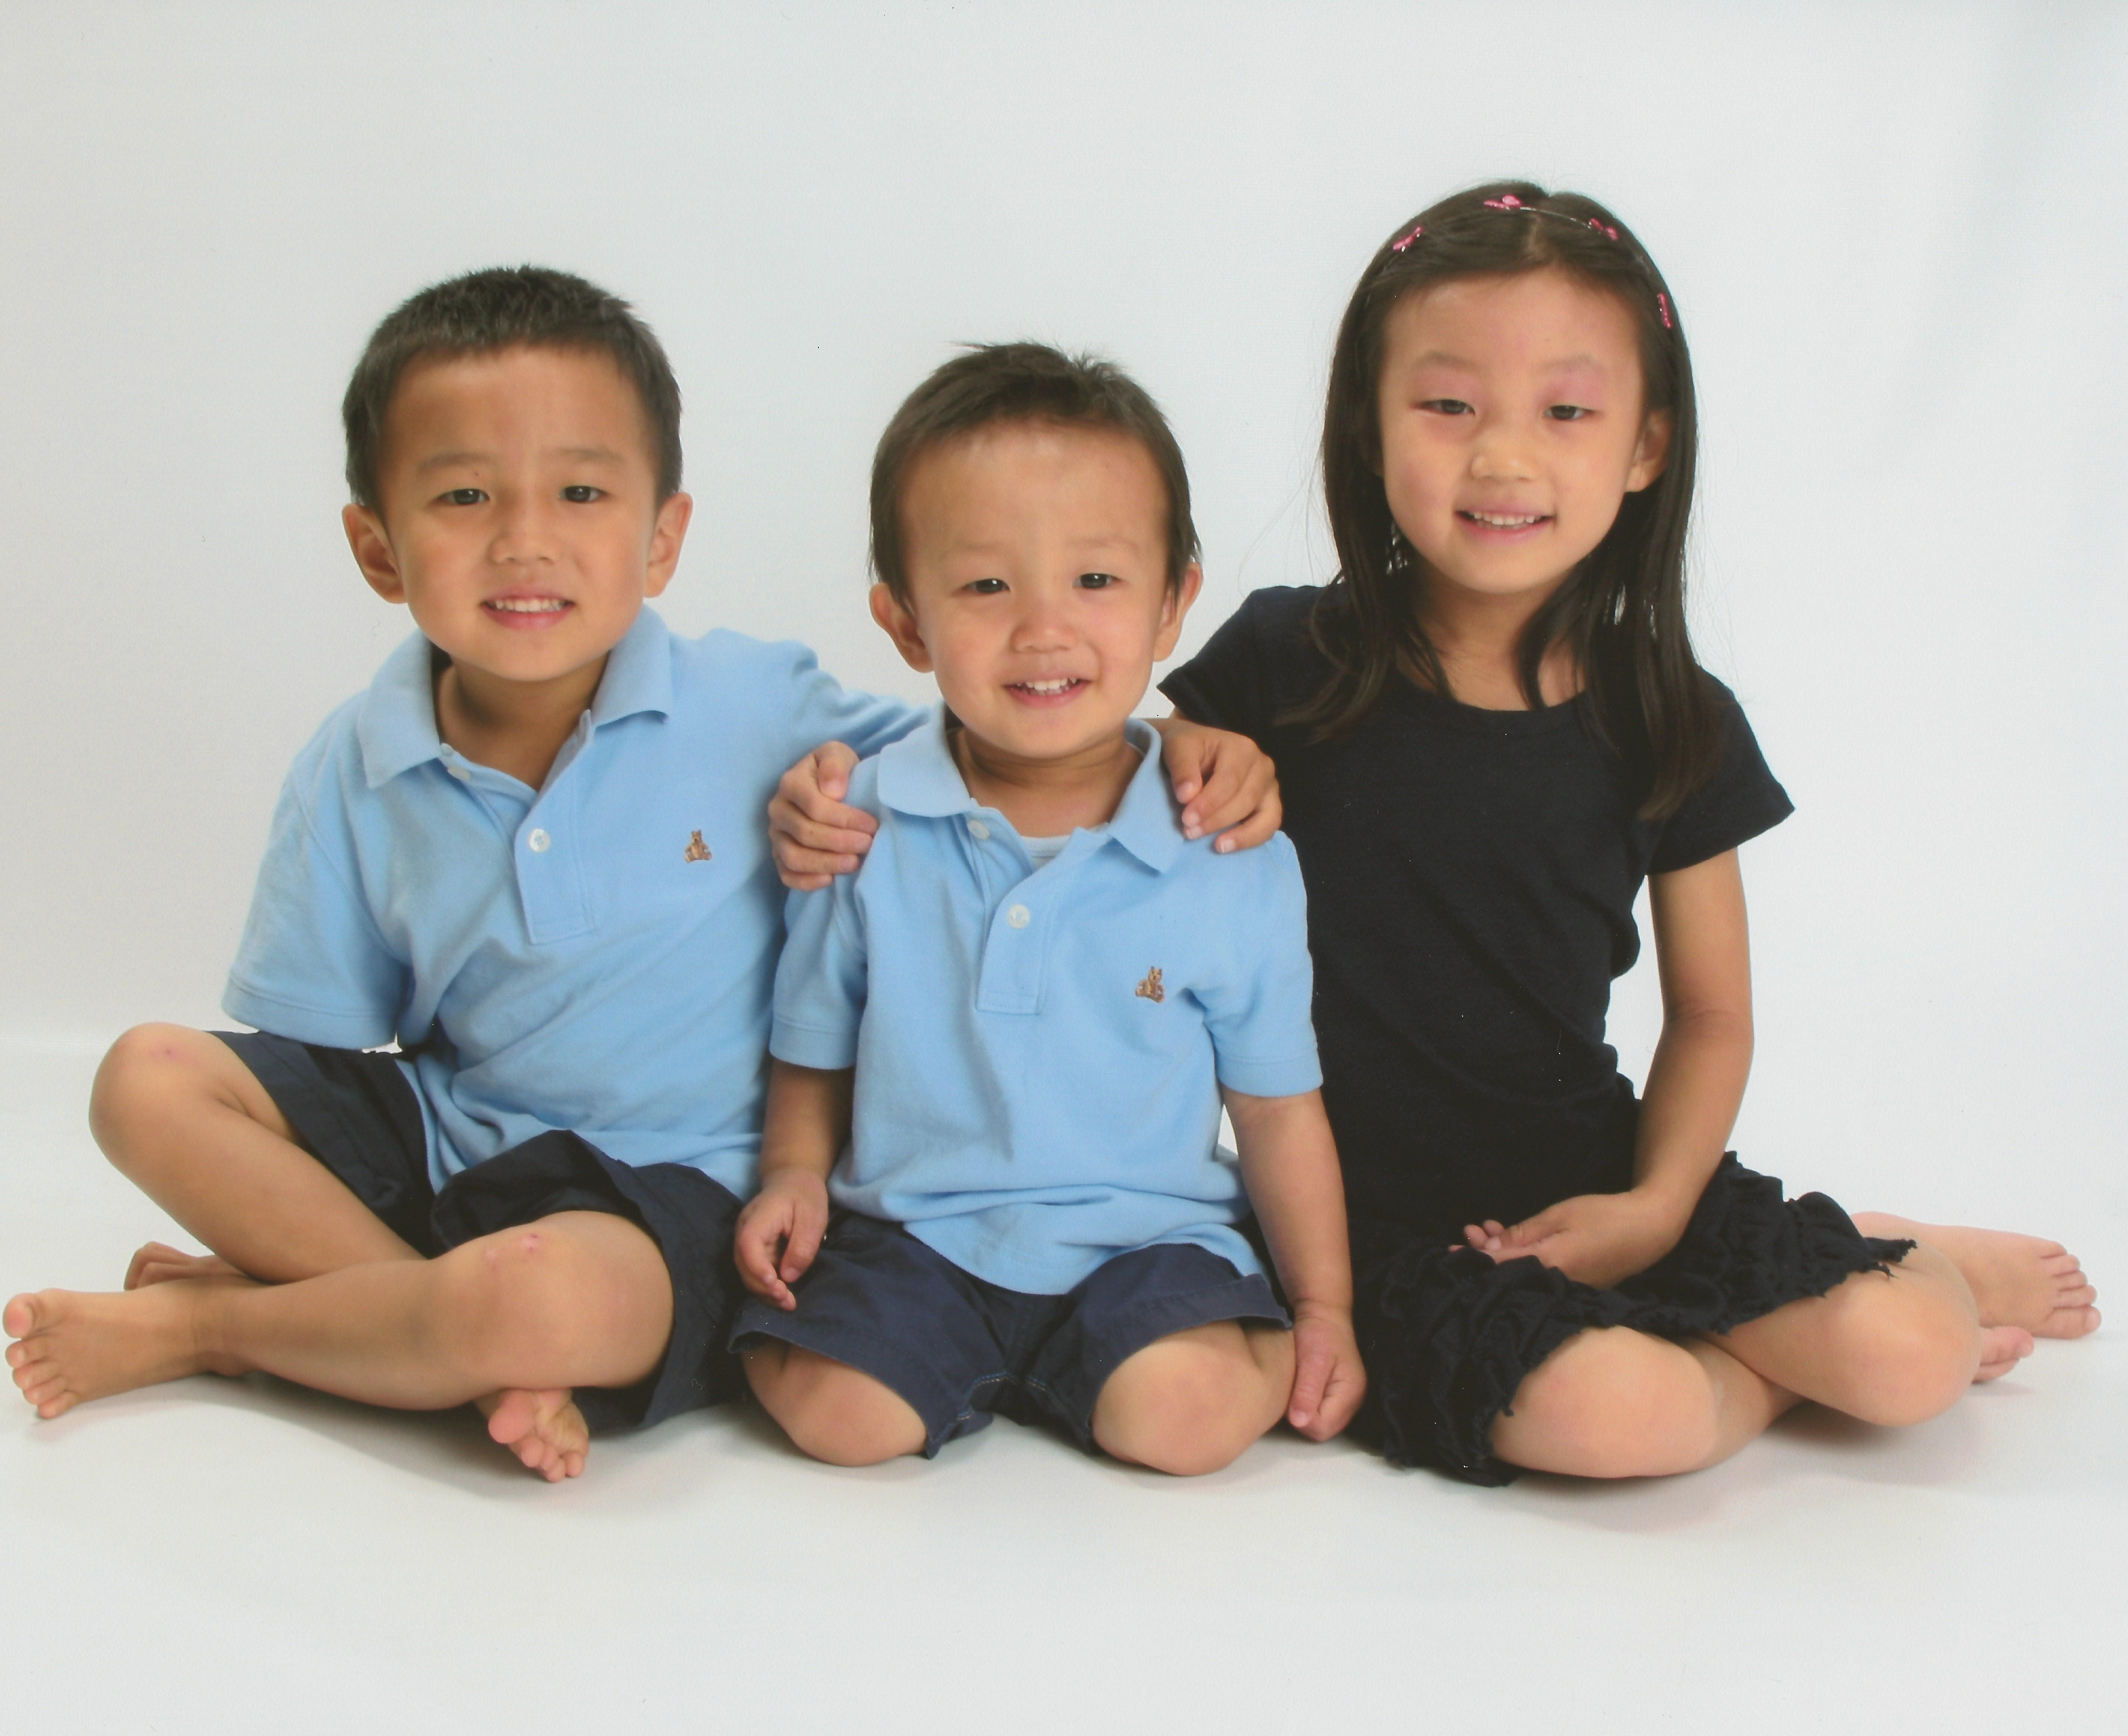 GAP Open Casting Call for Kids and Cute Baby Models Baby gap kids photo contest